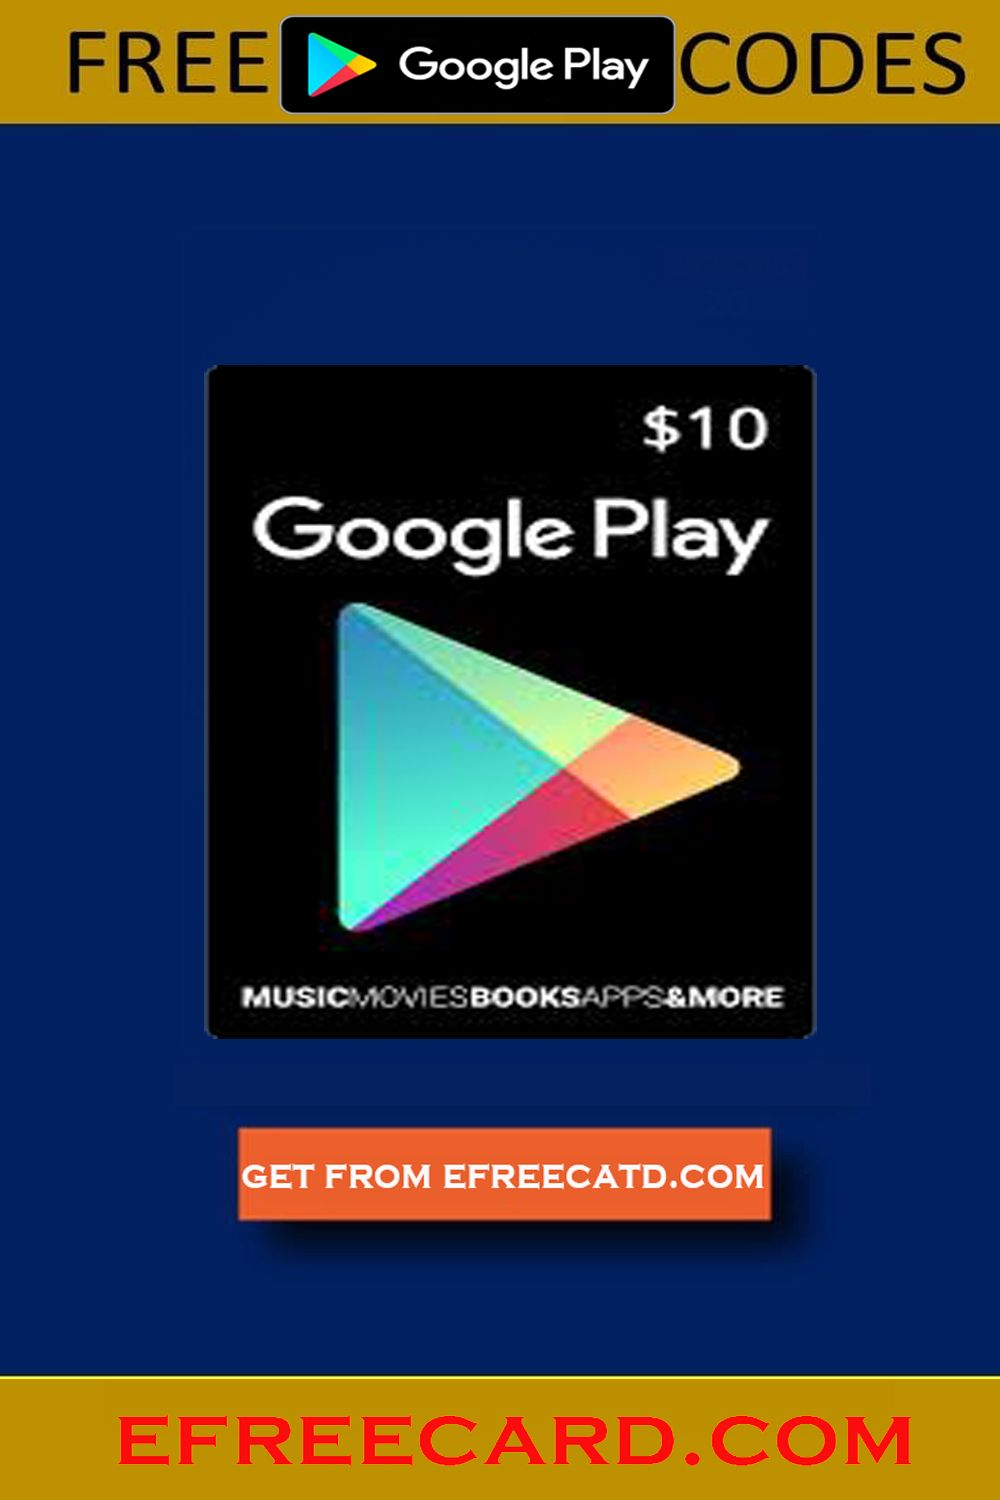 How to get redeem code for playstore 2020 google play